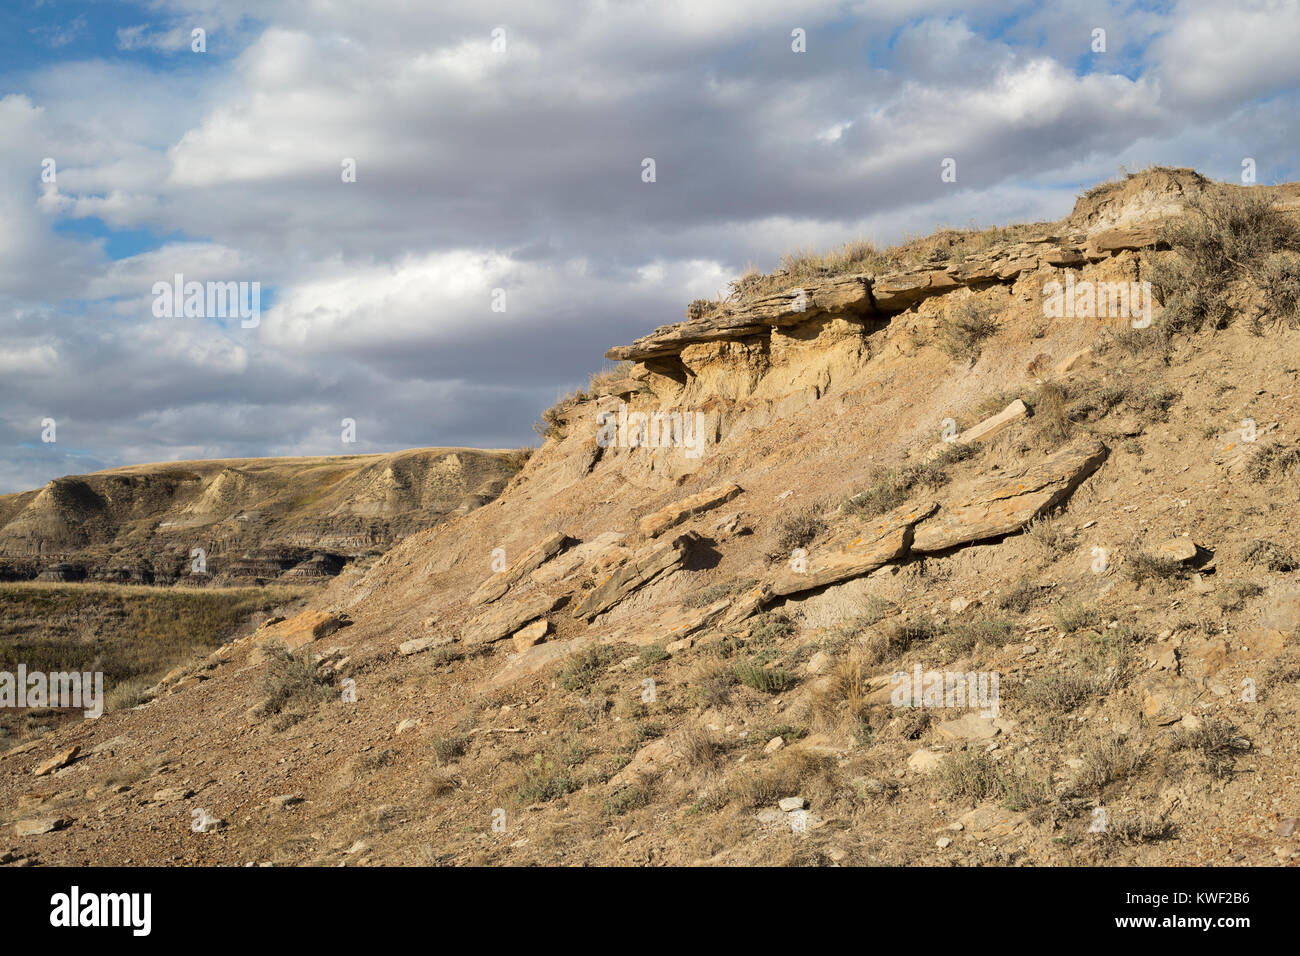 Eroded slopes in Alberta badlands, with sandstone layer above bentonite clay - Stock Image